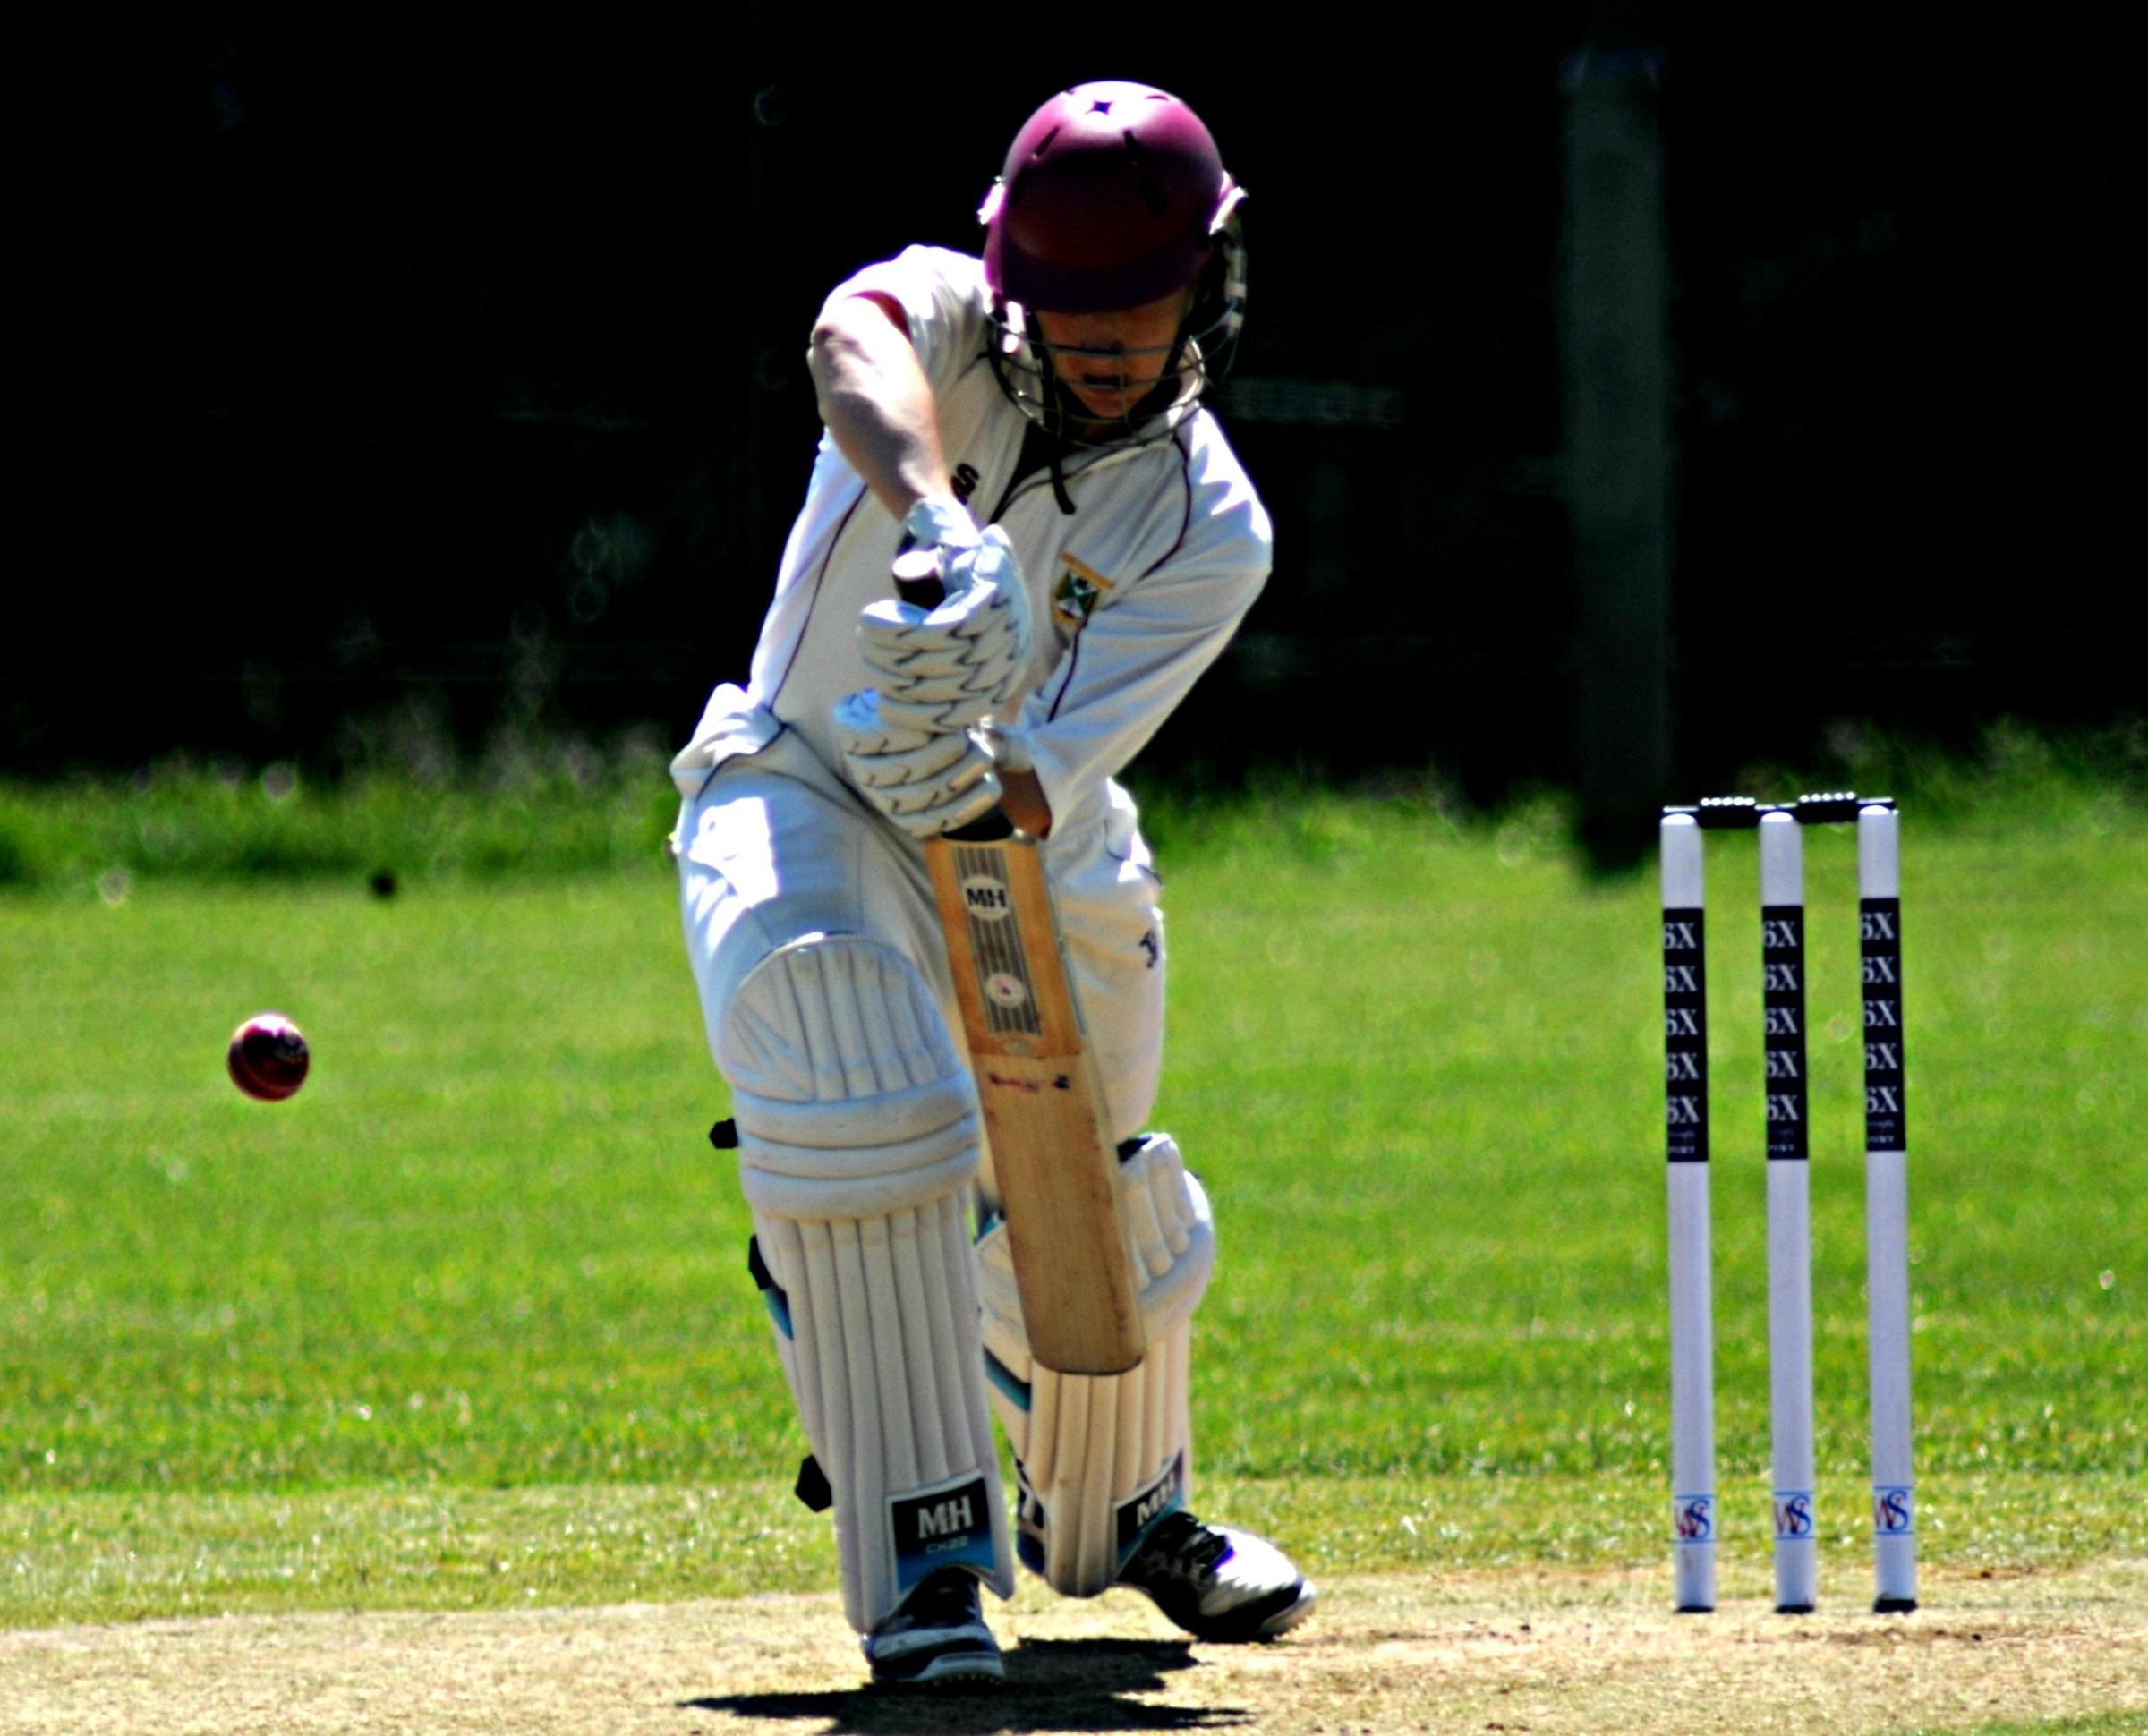 Cricket: Slade narrowly misses out on ton in Winterbourne win